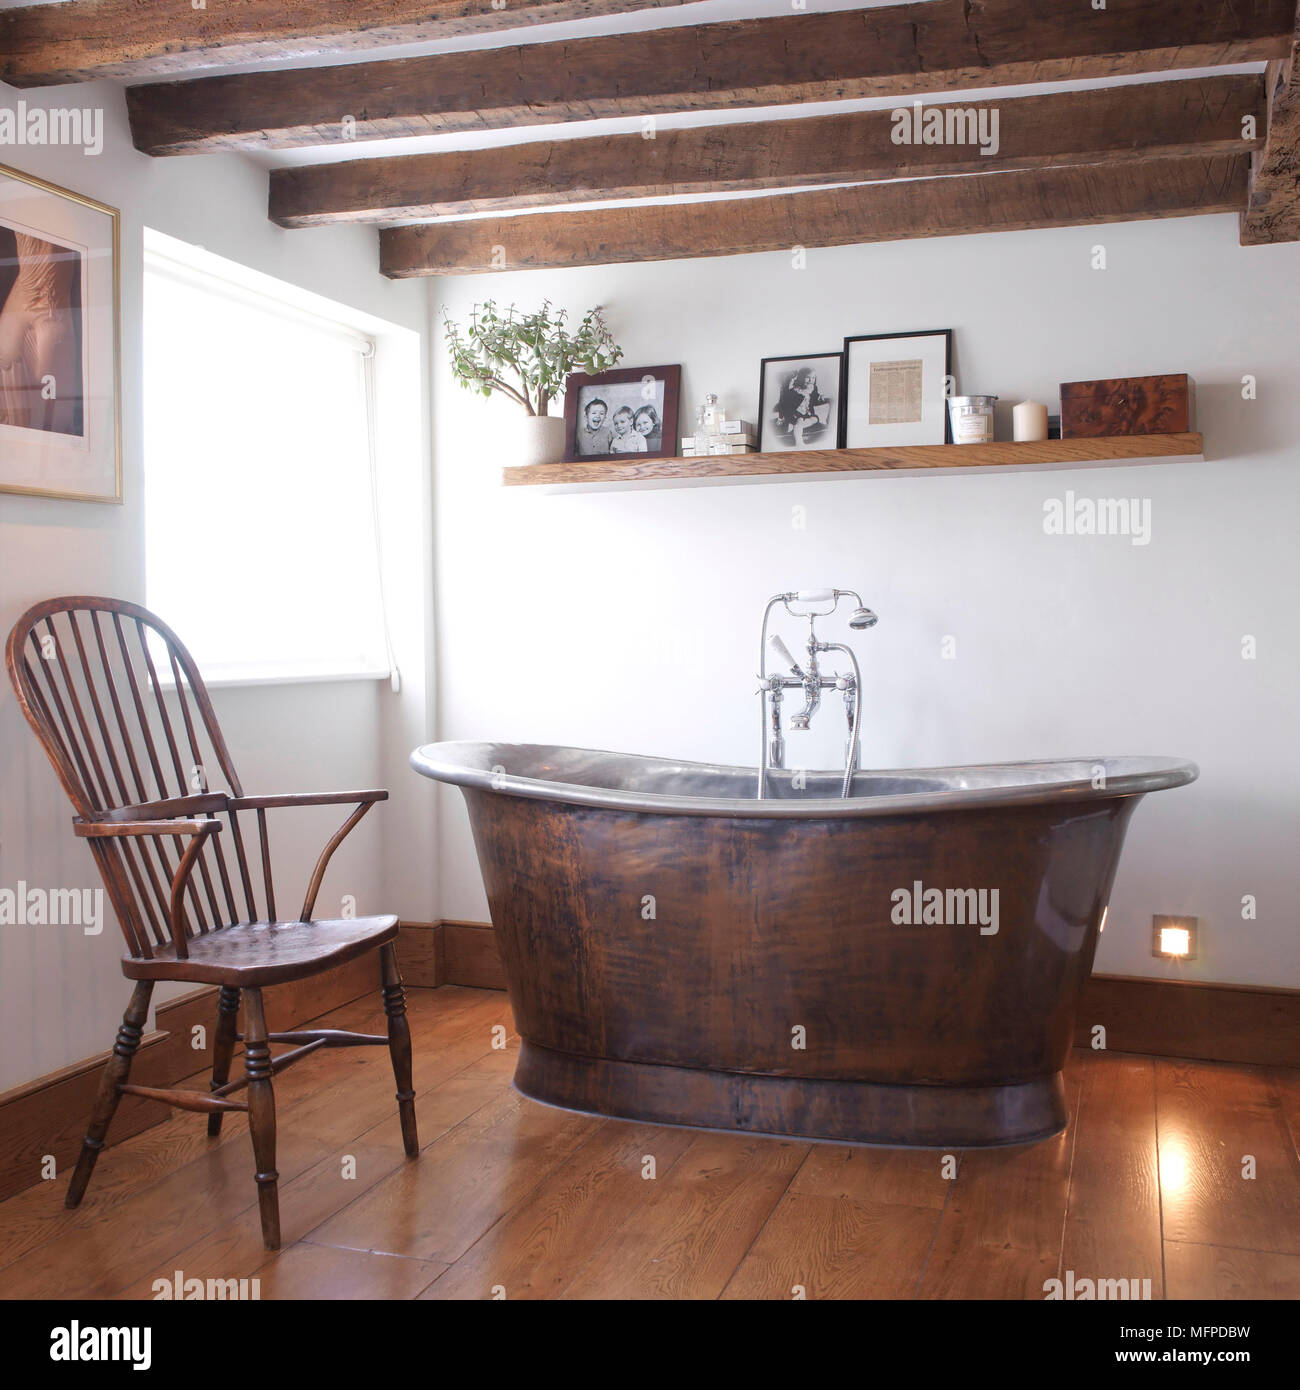 Freestanding Old Fashioned Bathtub In Centre Of Country Style Bathroom With  Period Chair